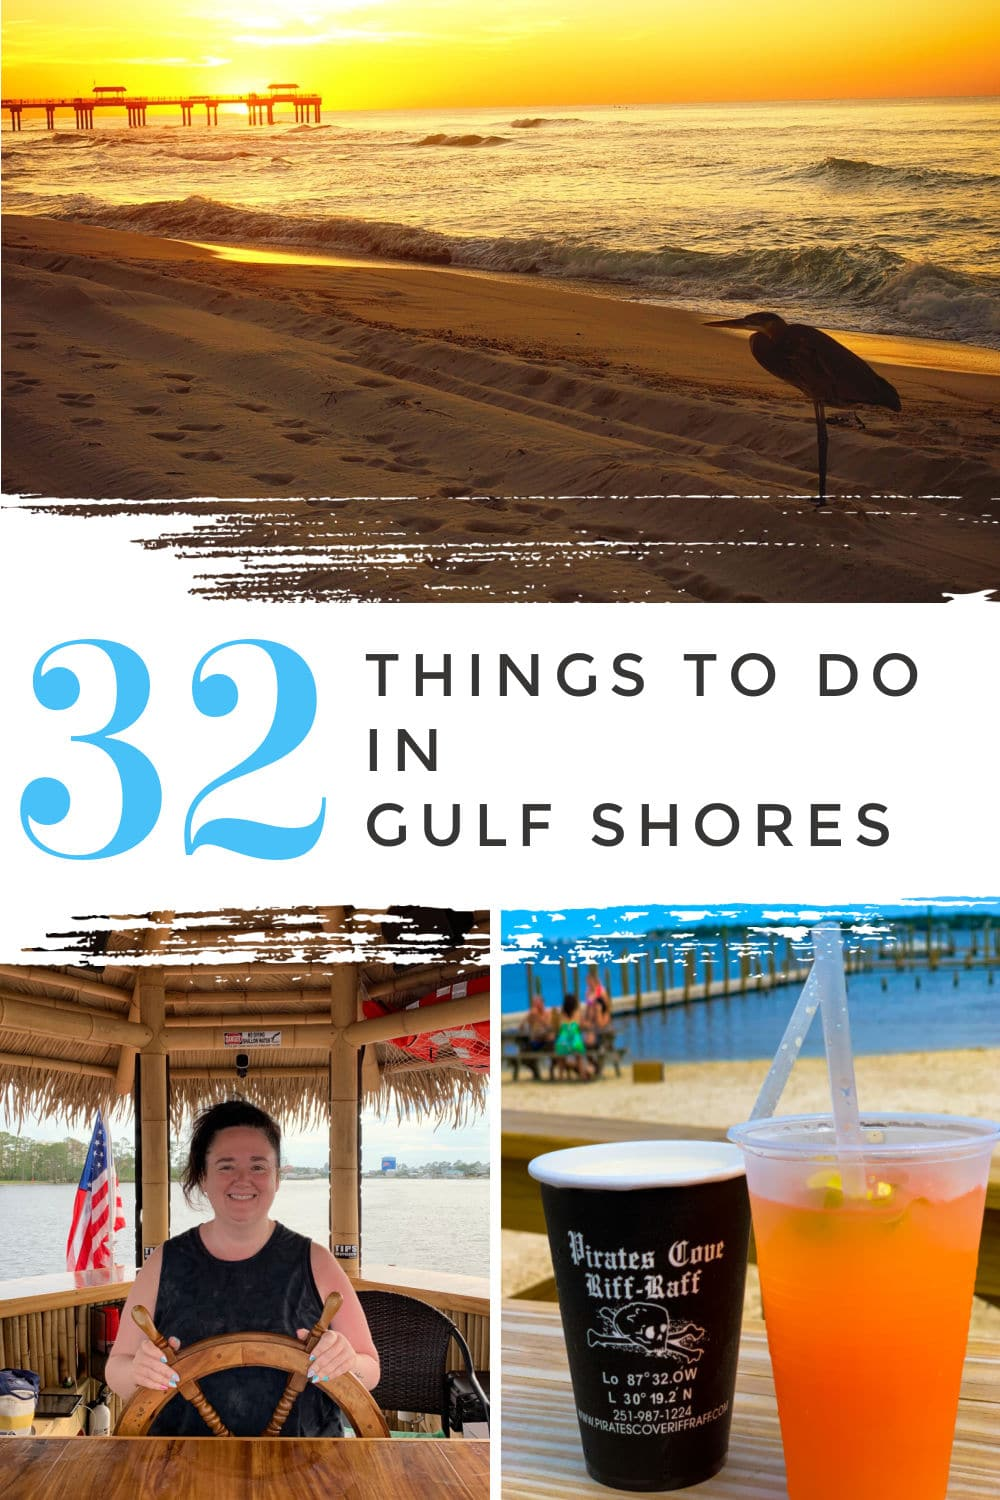 When you're planning your visit to Gulf Shores, here are 32 things to do for folks of all ages! I've been a few times, and will keep going back - it's so much fun! Whether you want to fish, beach, eat, drink or see the sites - I've got it on the list. This is a checklist of the best things to do on your vacation: via @foodhussy